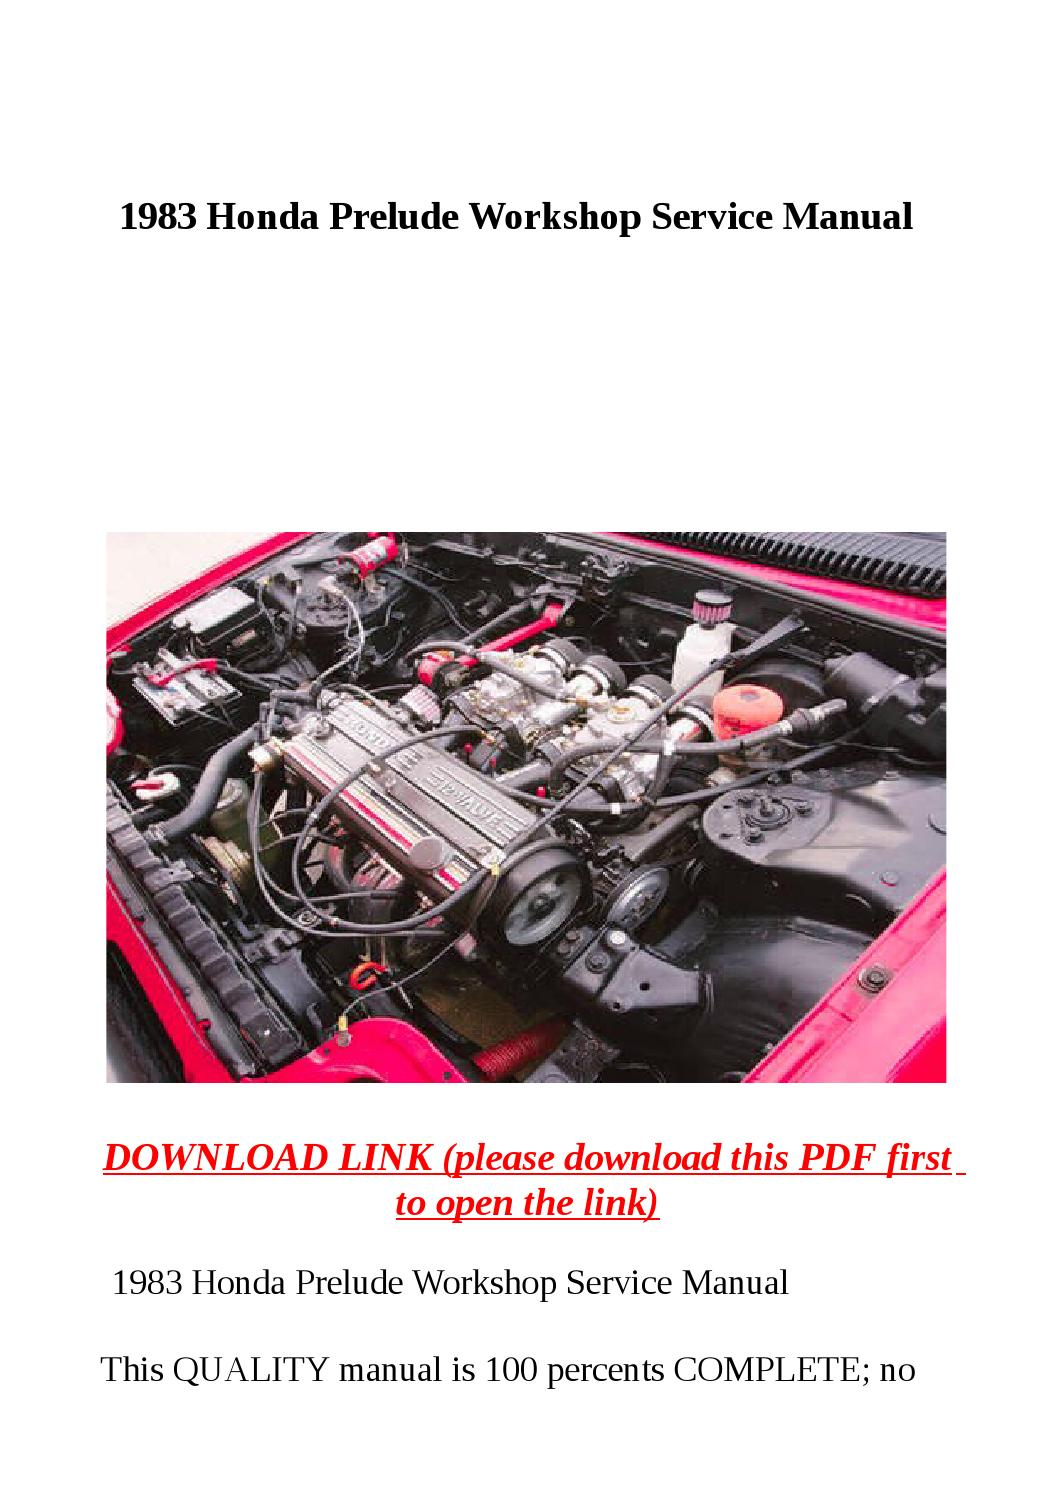 1983 Honda Prelude Workshop Service Manual By Abcdeefr Issuu